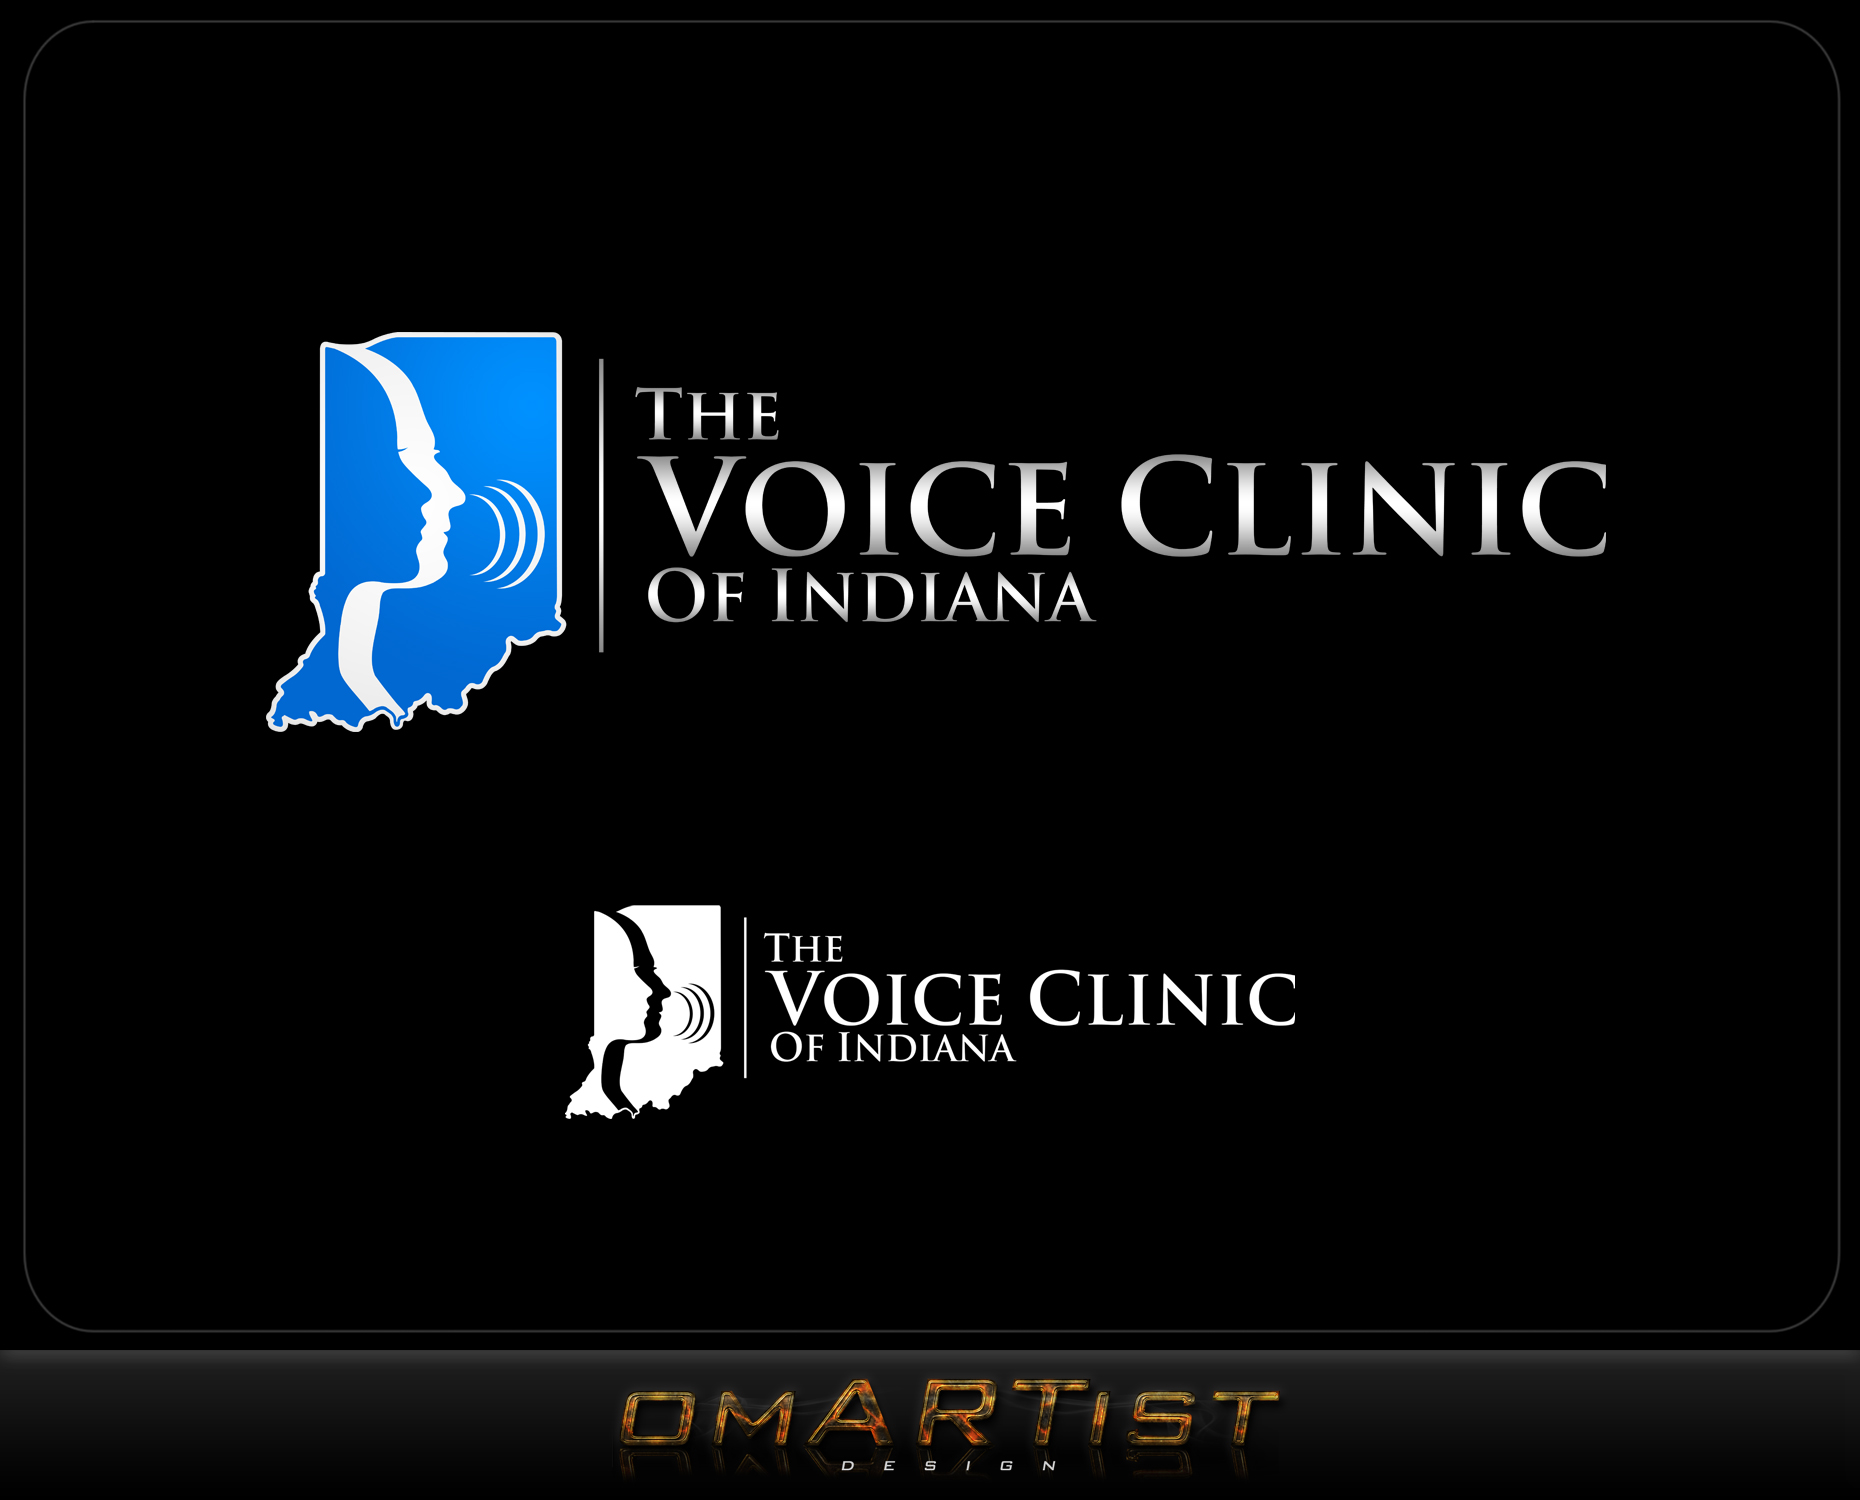 Logo Design by omARTist - Entry No. 19 in the Logo Design Contest Logo Design for The Voice Clinic of Indiana.